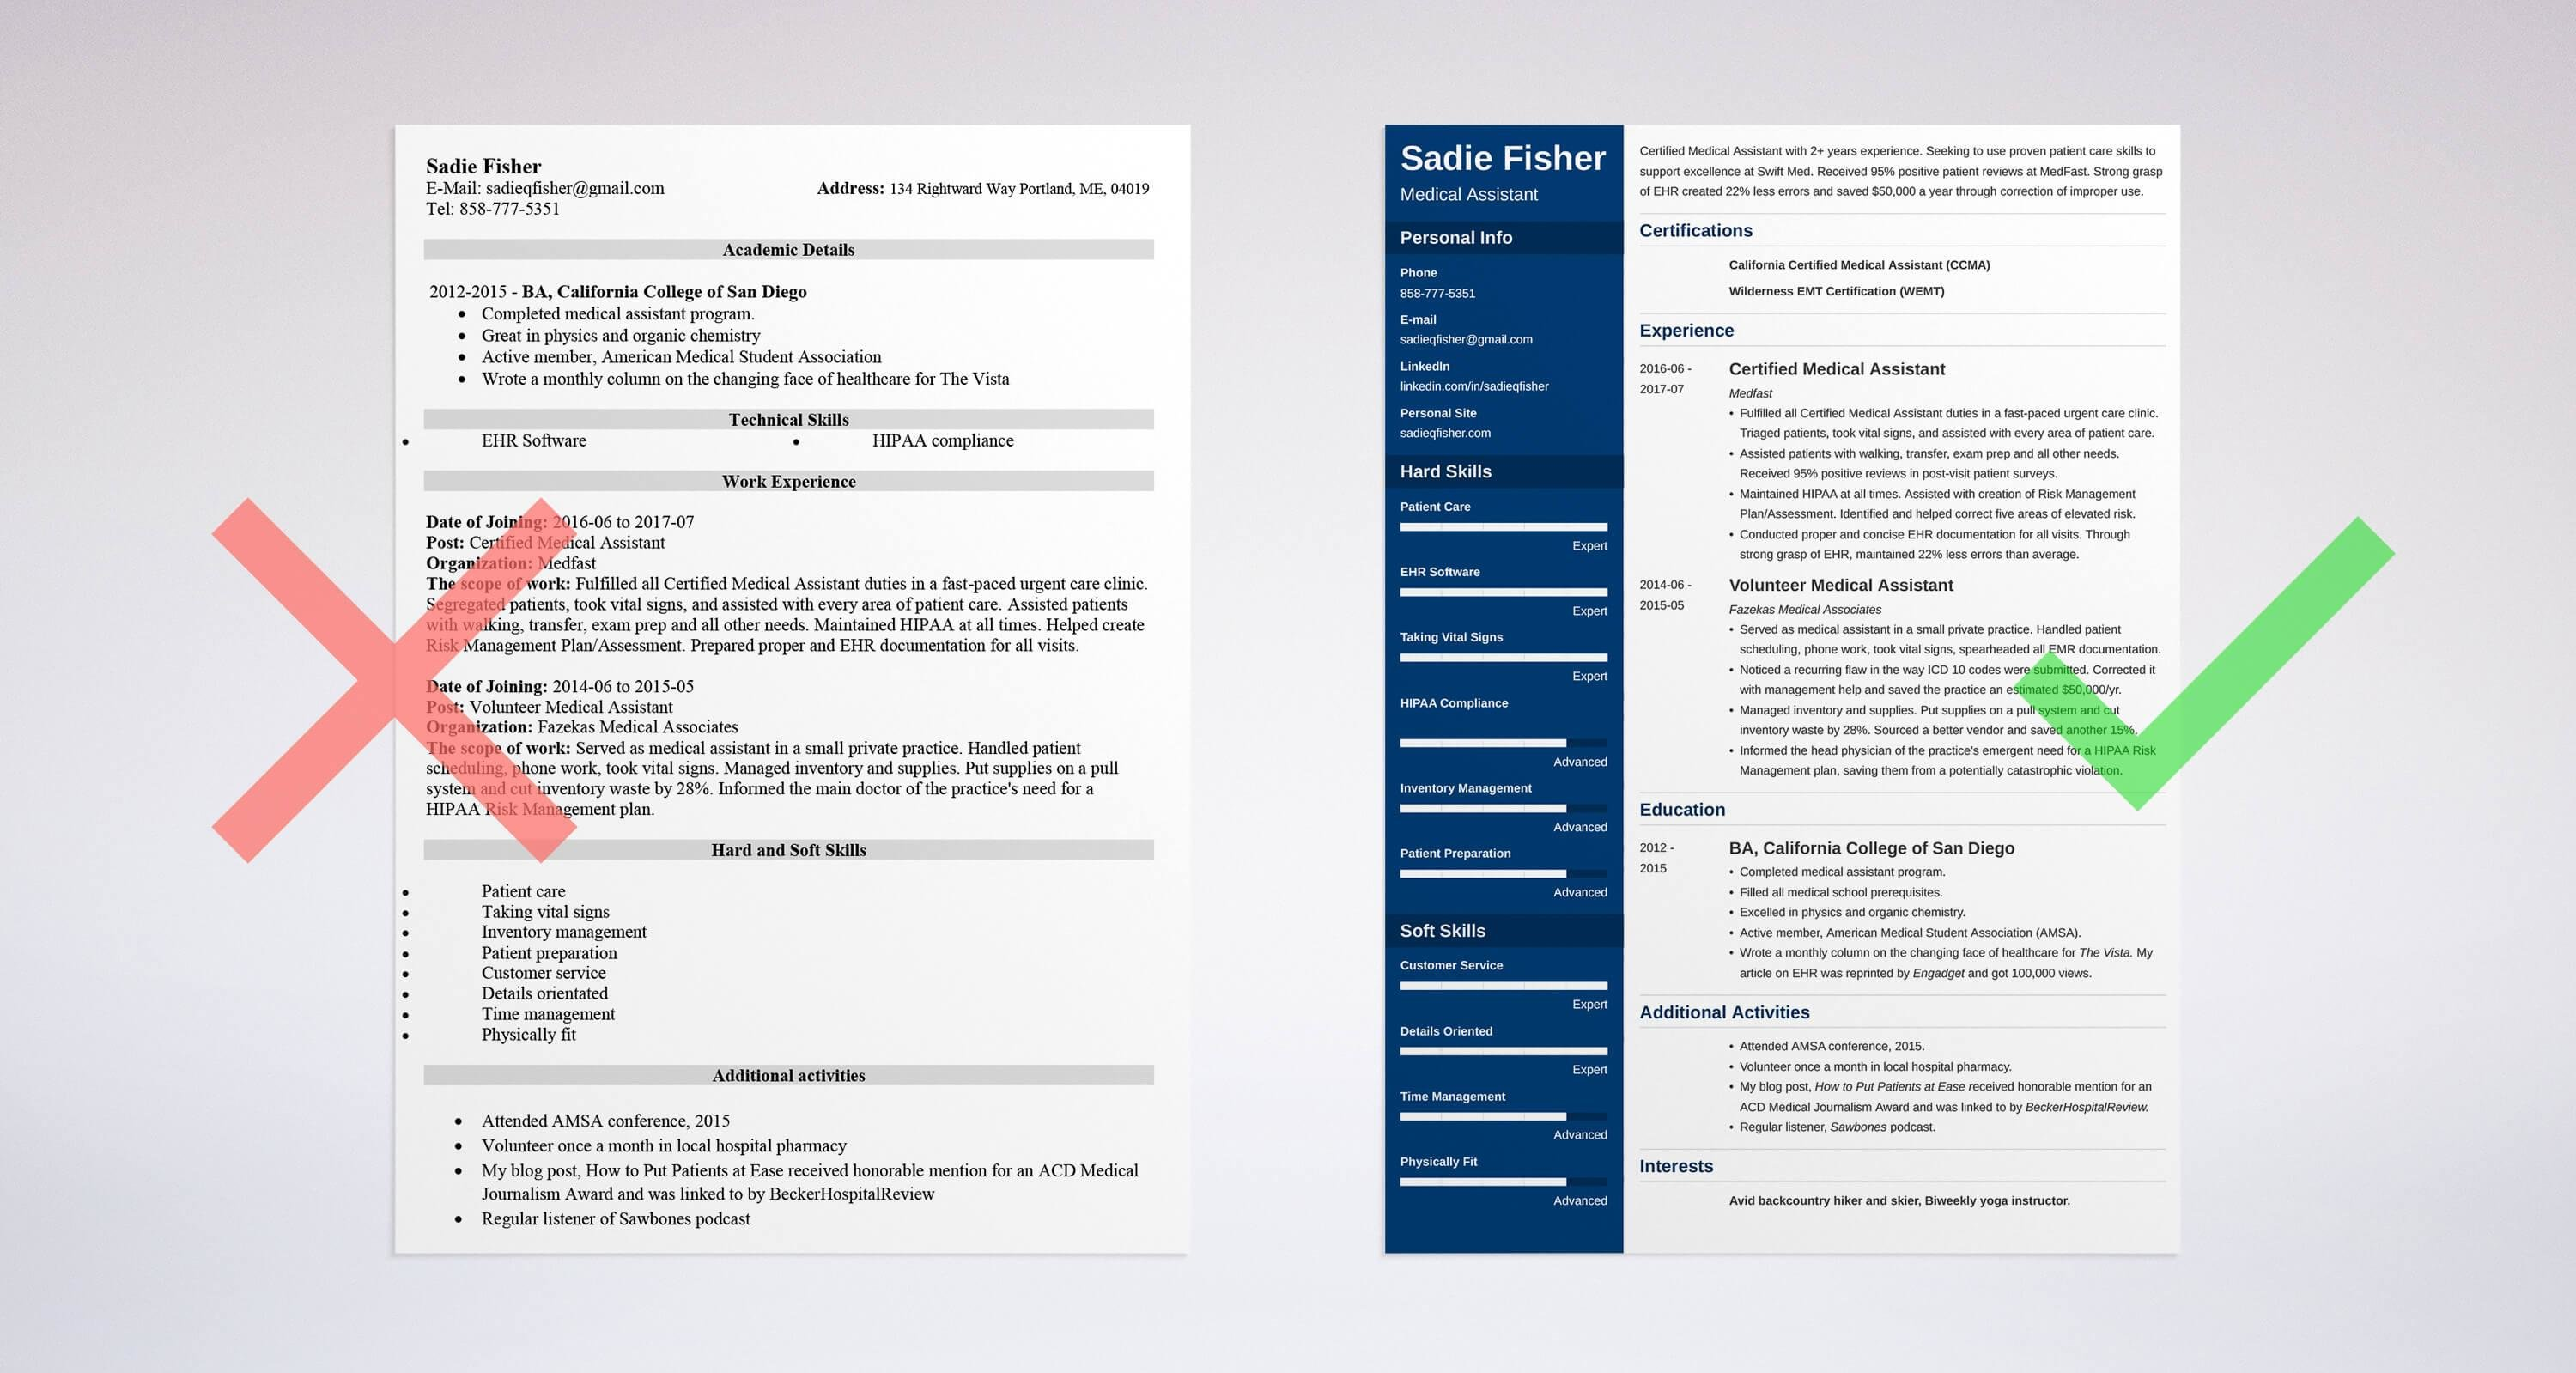 Medical Assistant Resume: Sample & Complete Guide [20+ Examples]